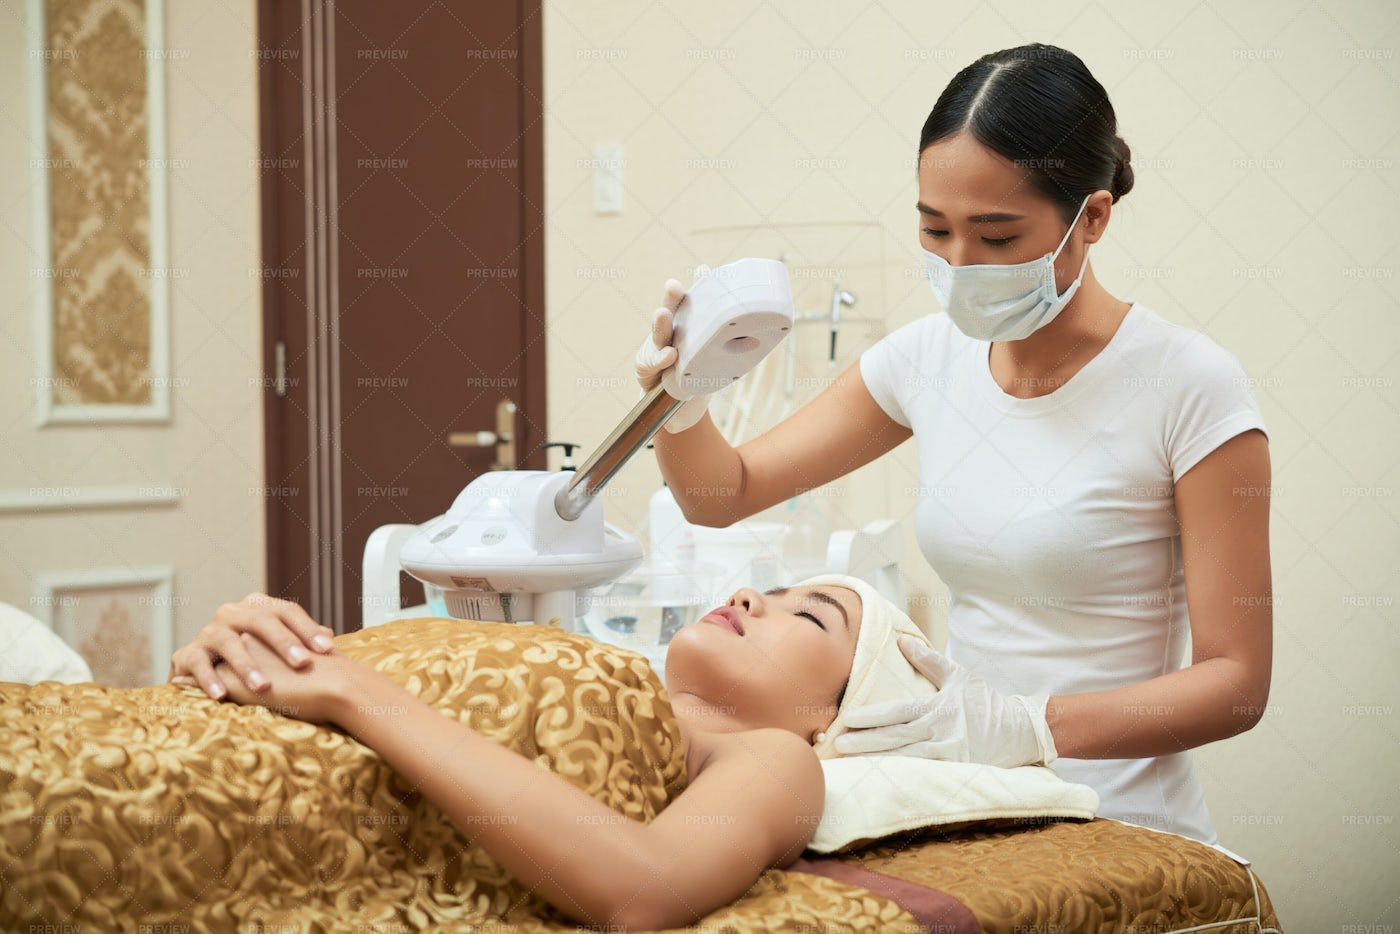 Laser Therapy In Spa Salon: Stock Photos